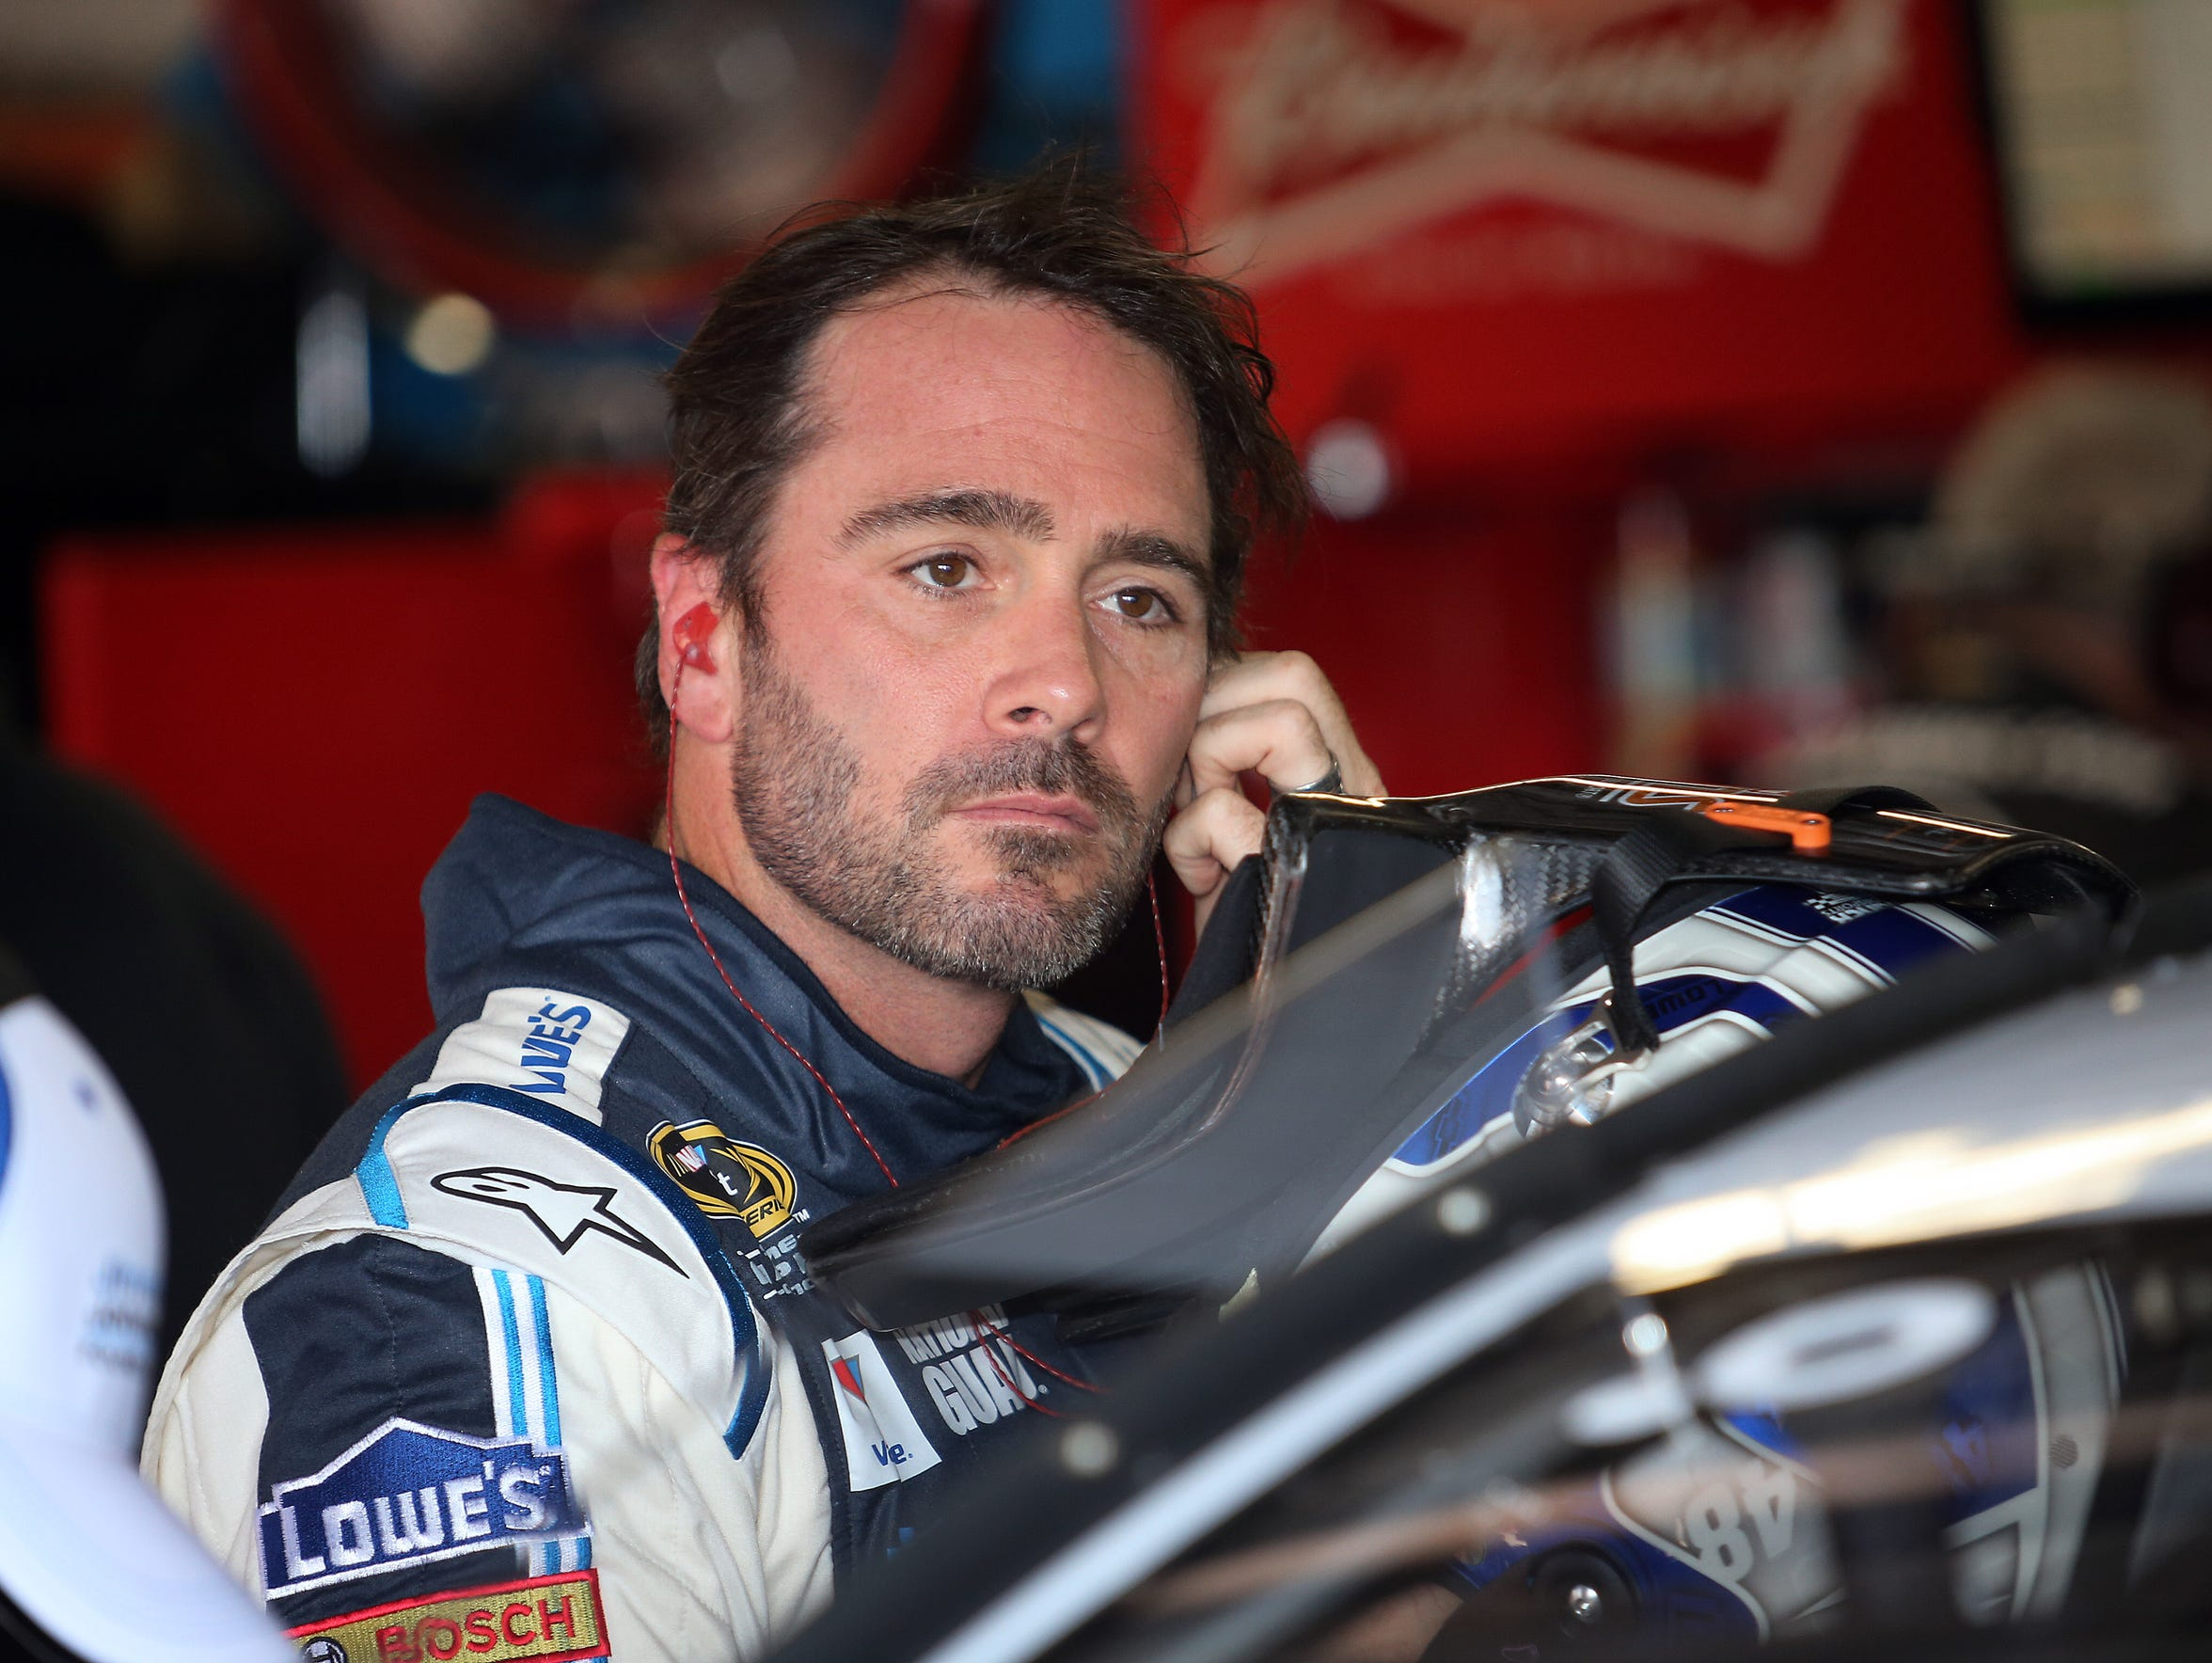 Jimmie Johnson won three straight races at the Las